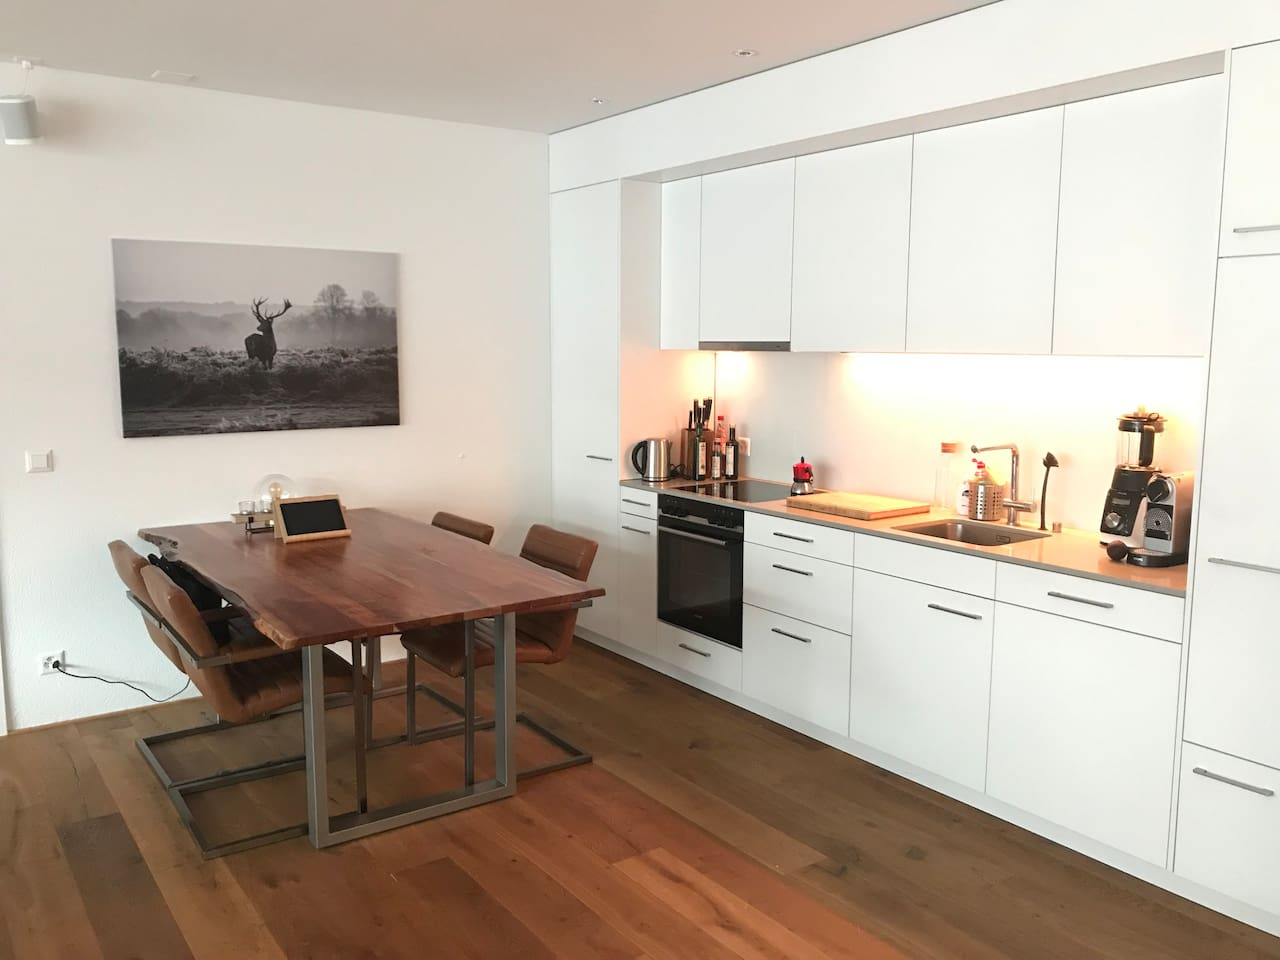 Well equipped Kitchen will ensure great cooking and dining at spacious wooden table with industrial leather chairs makes up for a cheerful evening with friends or family